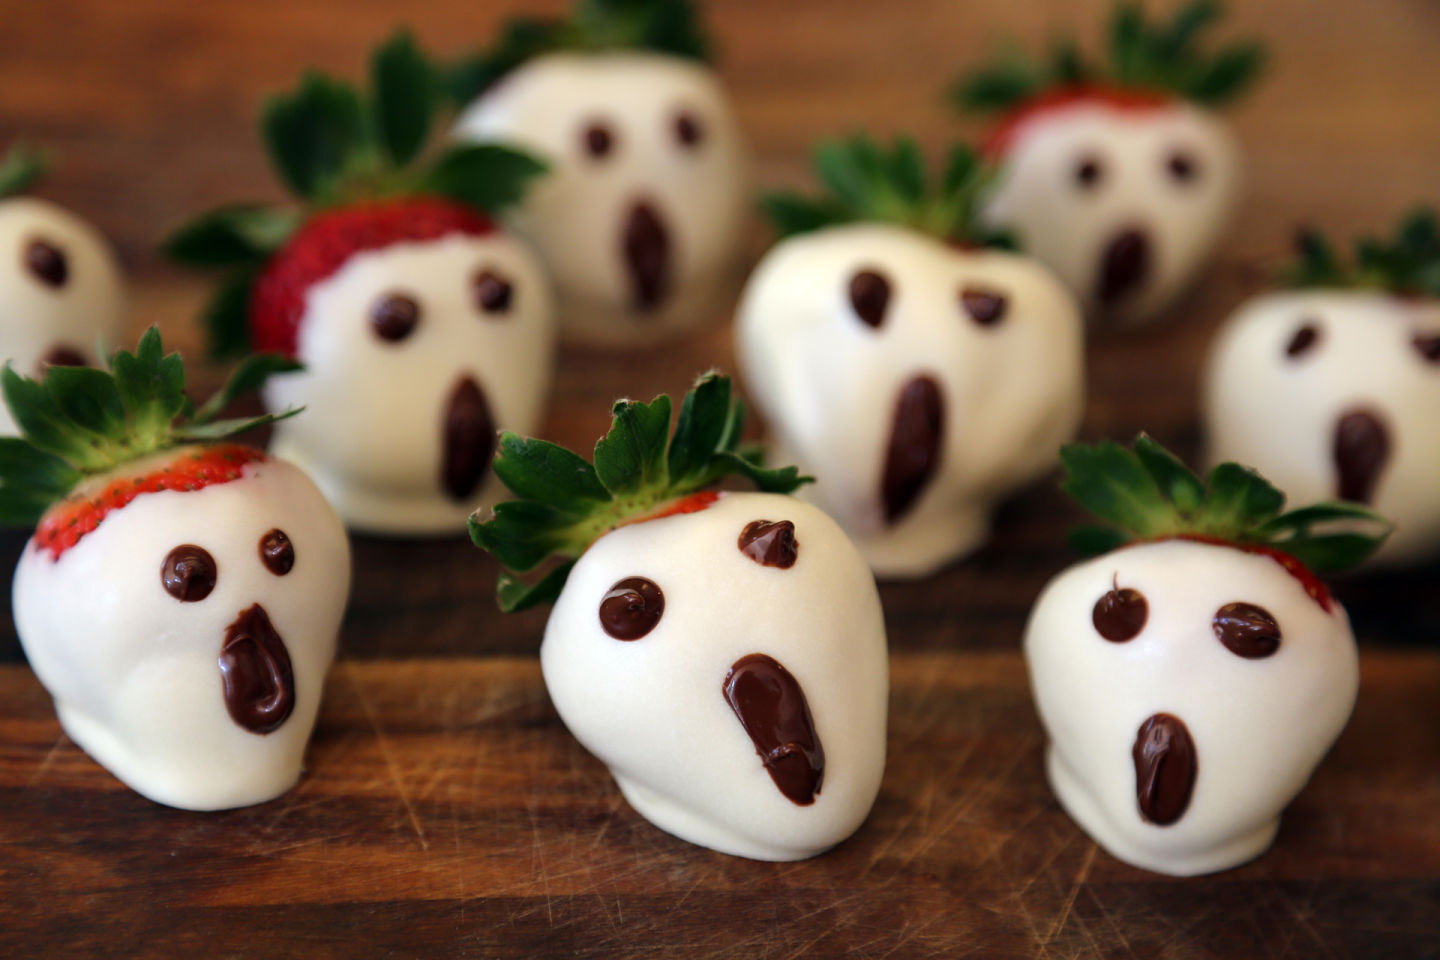 Halloween White Chocolate Dipped Strawberry Ghosts Wendy Goodfriend